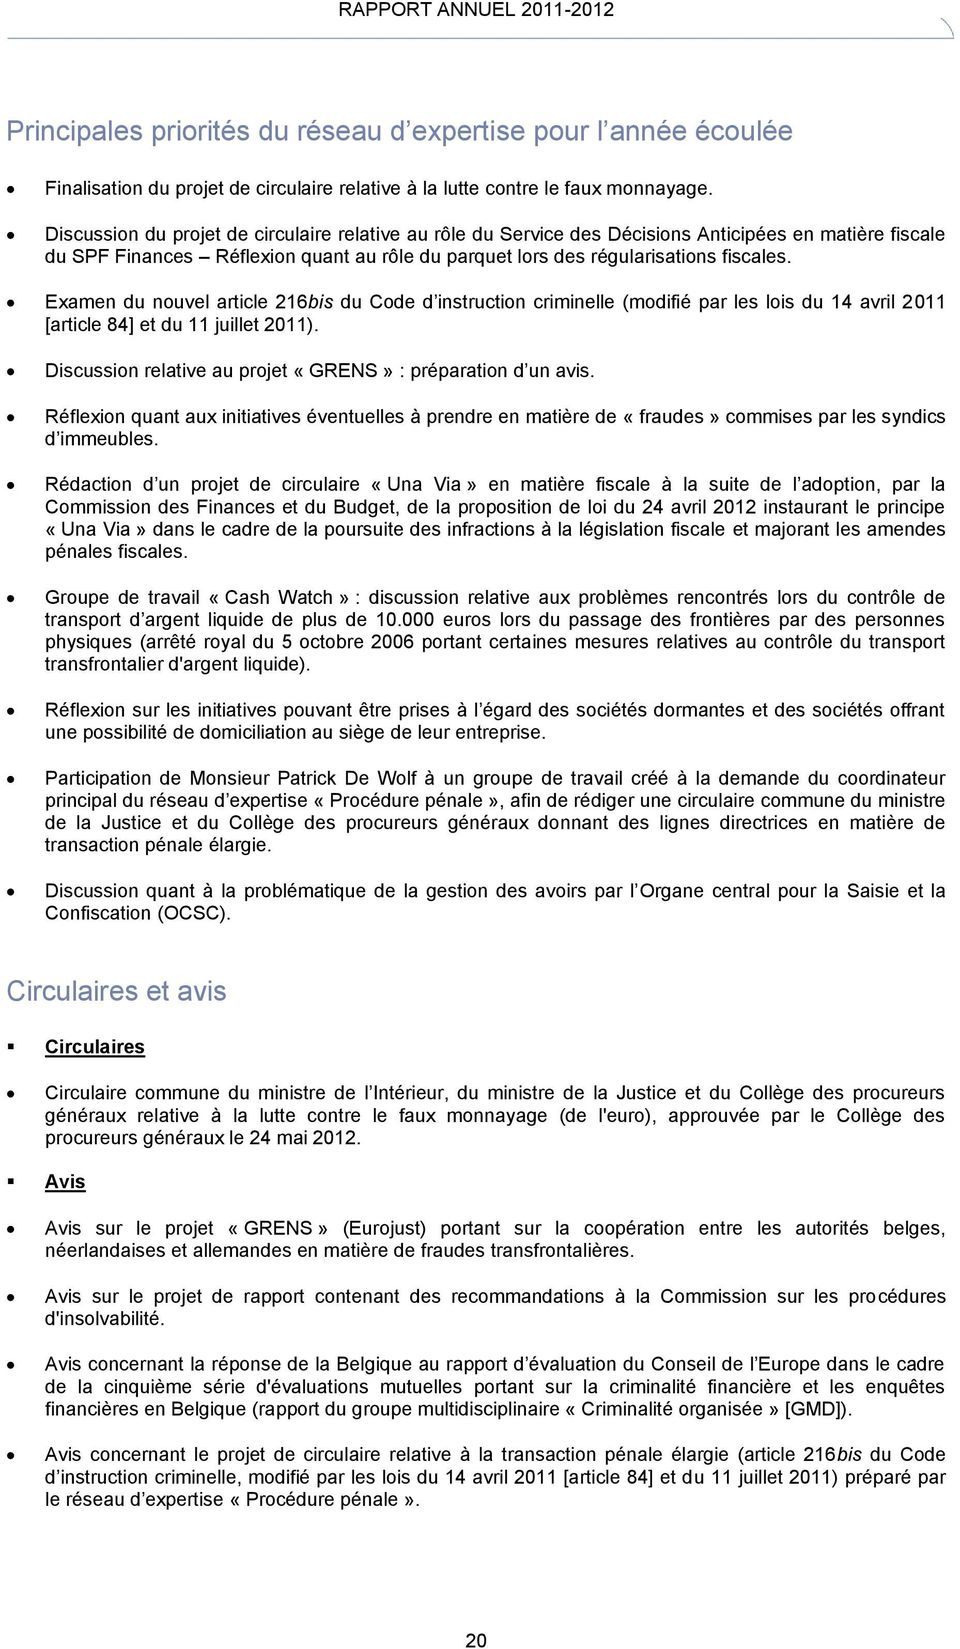 Examen du nouvel article 216bis du Code d instruction criminelle (modifié par les lois du 14 avril 2011 [article 84] et du 11 juillet 2011).